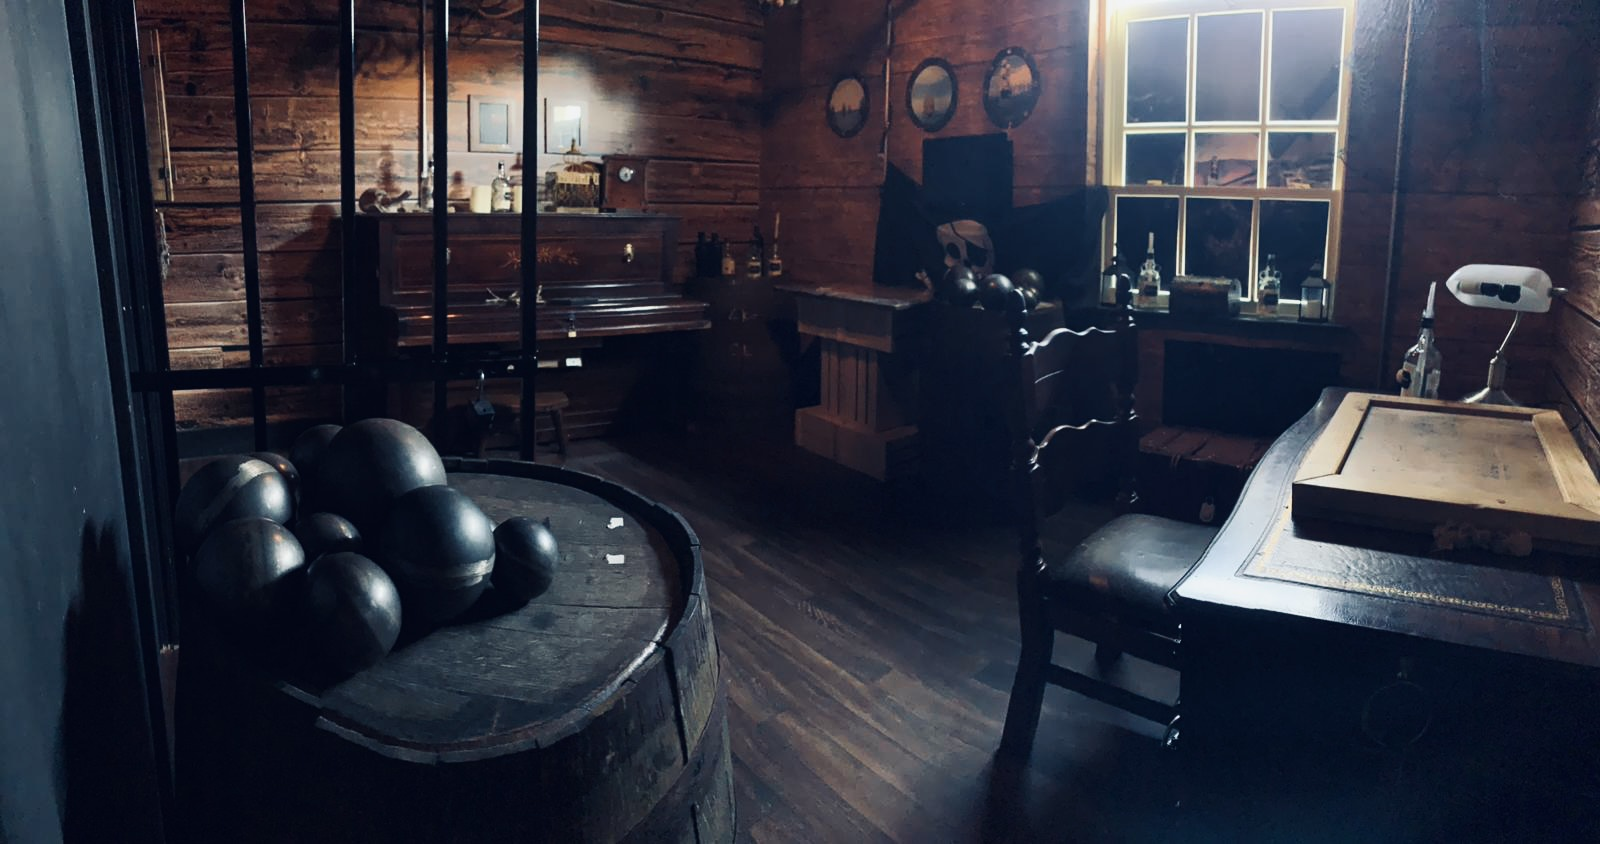 Image showing inside one of the escape rooms at The Escapologist